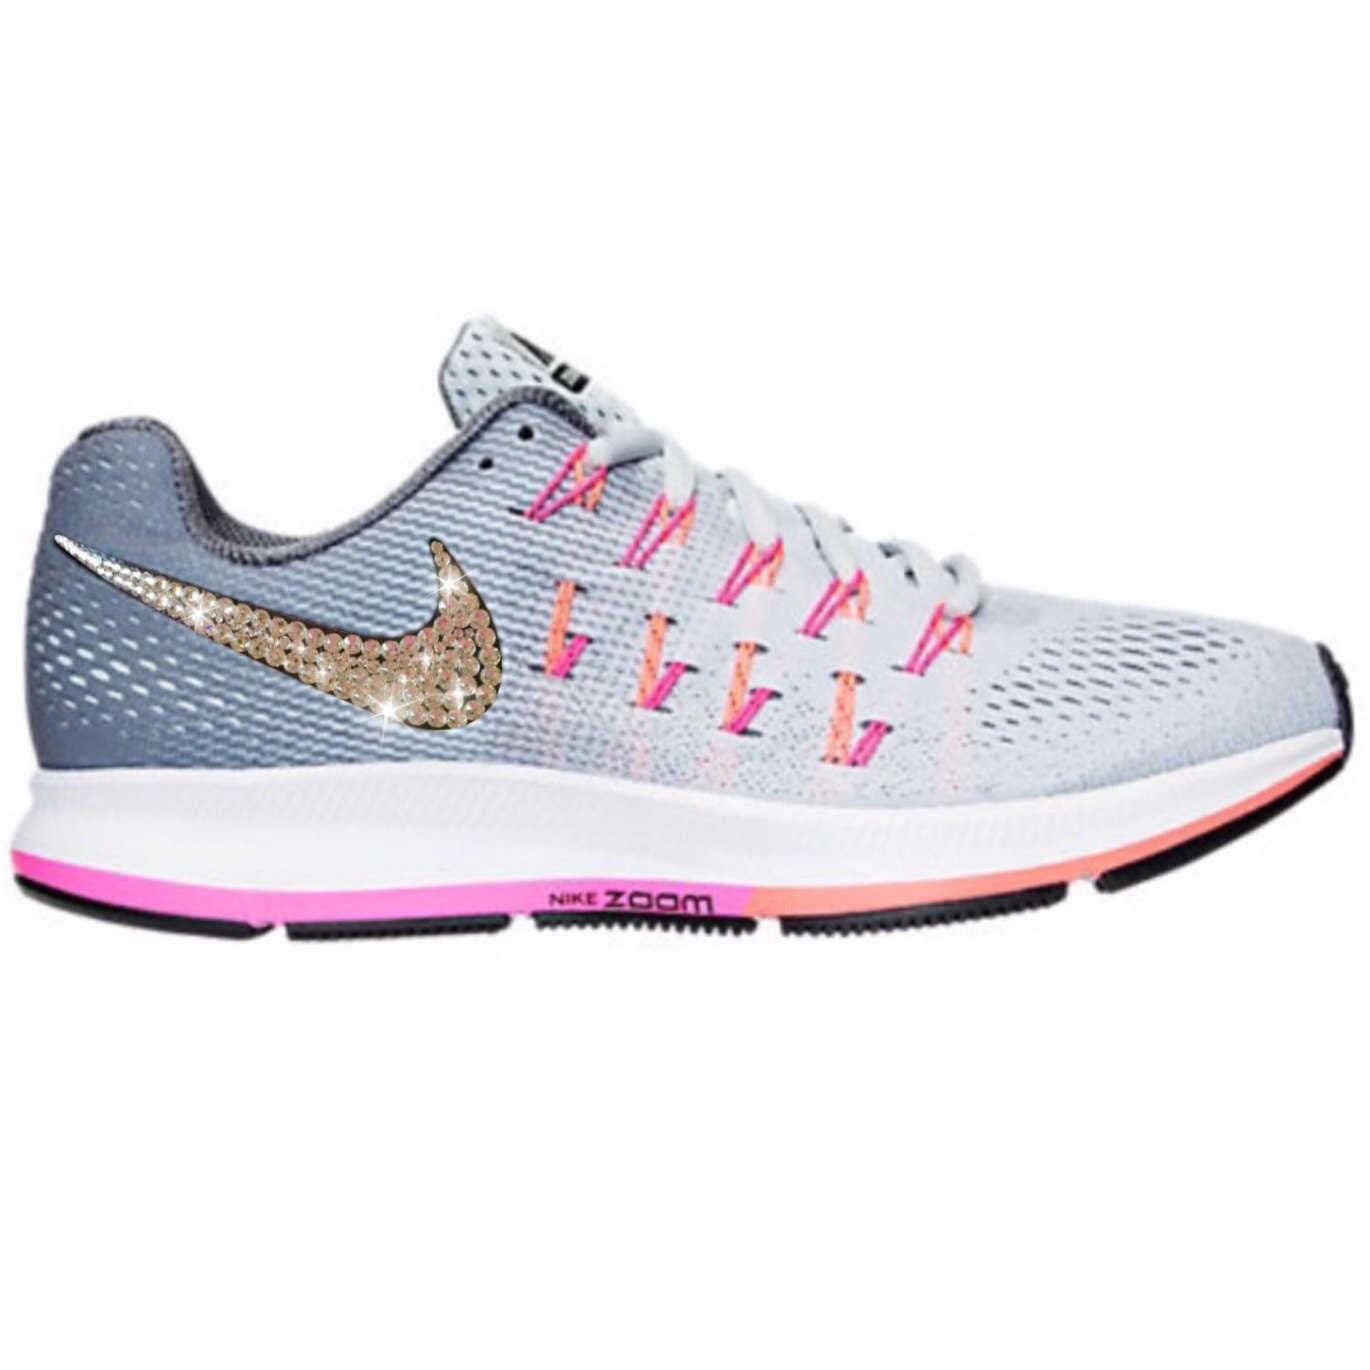 7875058a7a49 ... where can i buy bling nike air zoom pegasus 33 shoes with swarovski  crystals grey pink